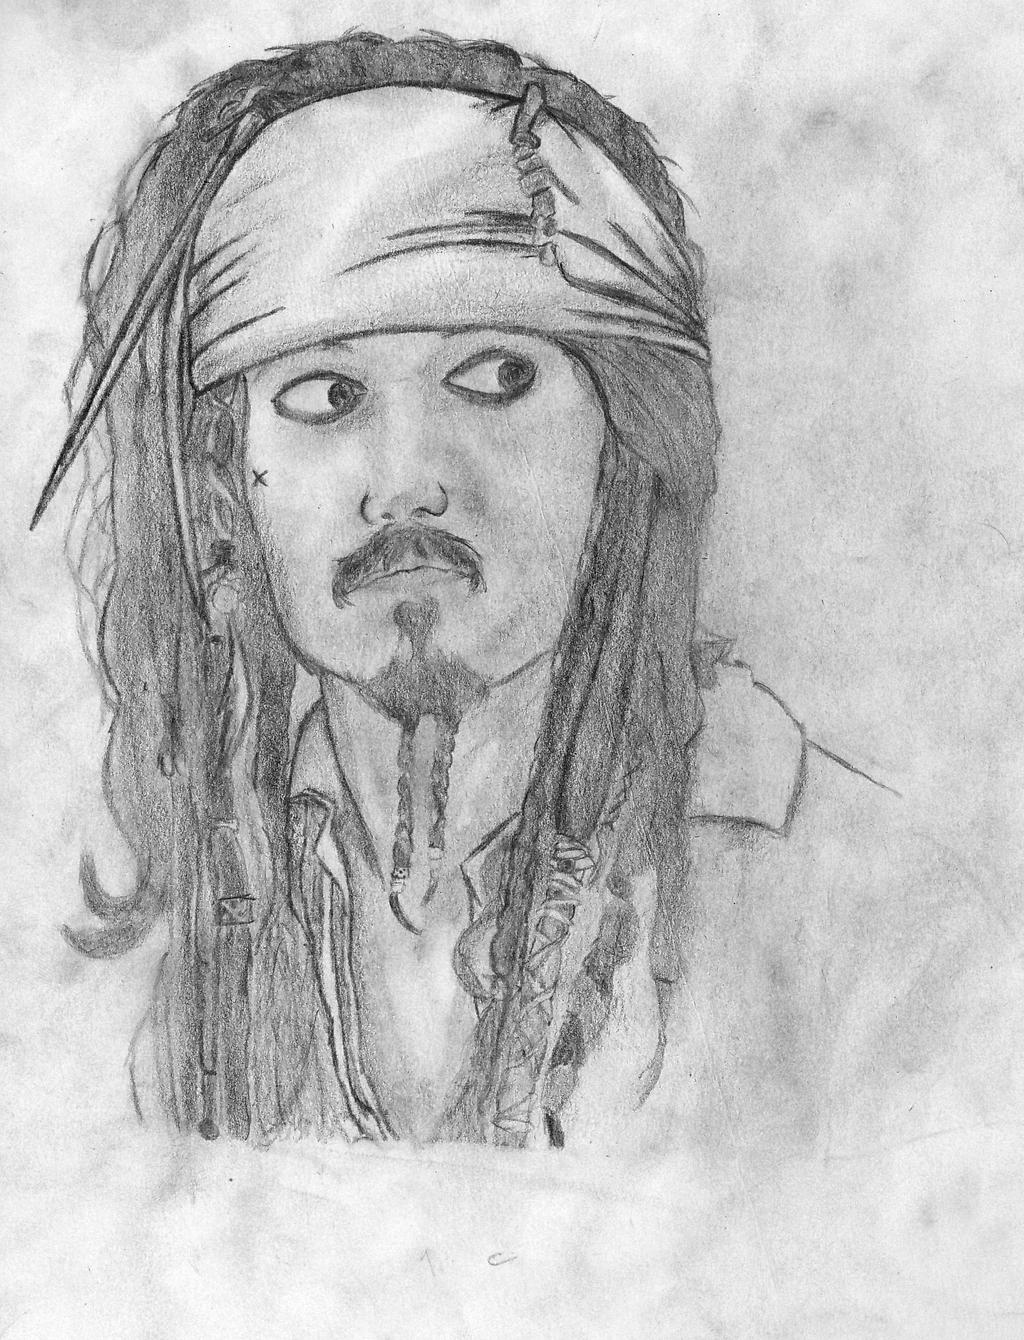 Jack sparrow(Drawing) by Frostzone1229 on DeviantArt